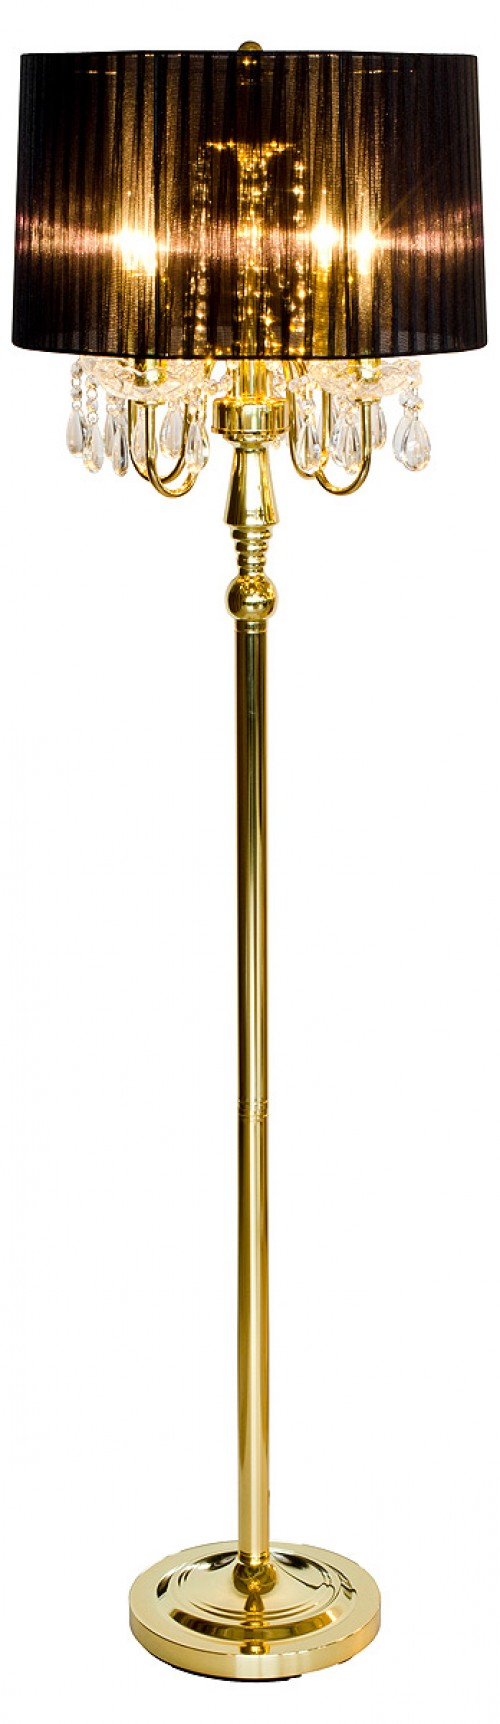 Beaumont Four Light Gold Floor Lamp